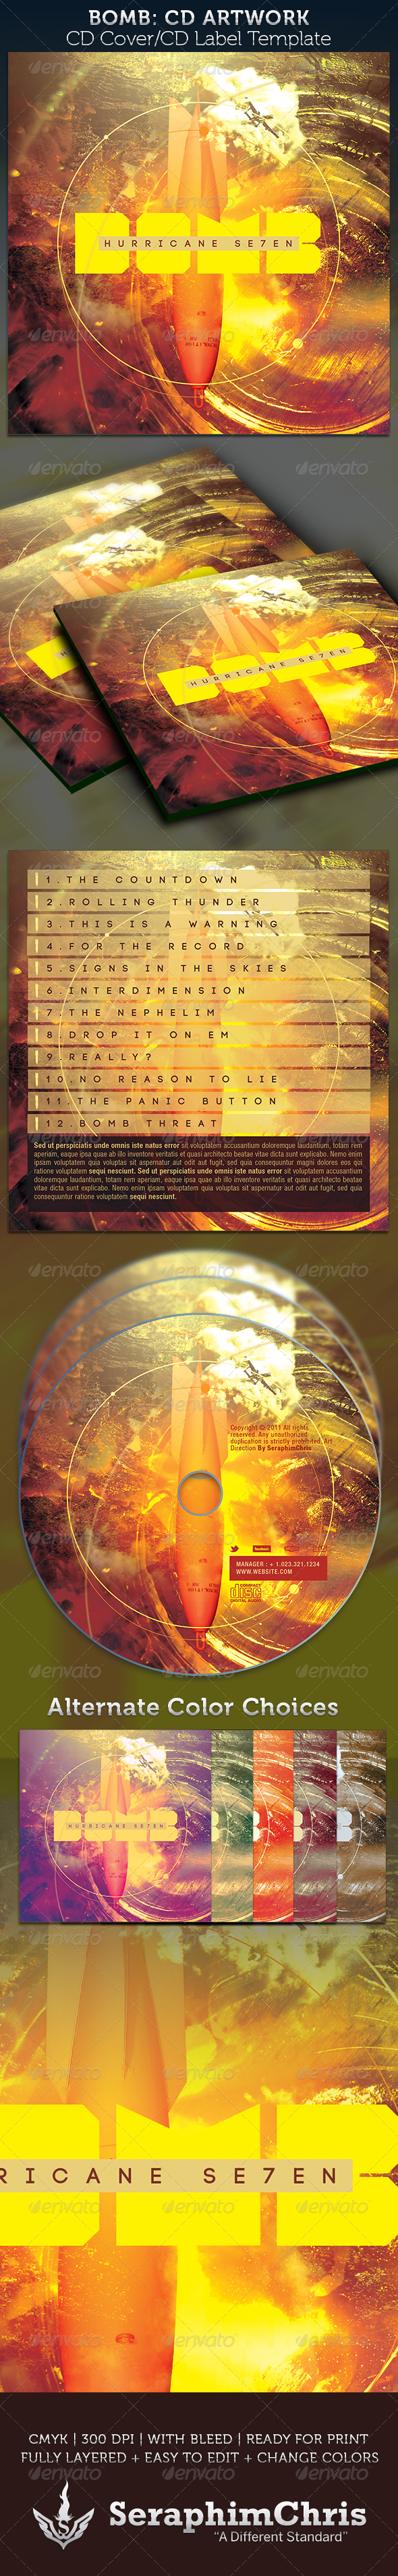 Bomb CD Cover Artwork Template - CD & DVD Artwork Print Templates